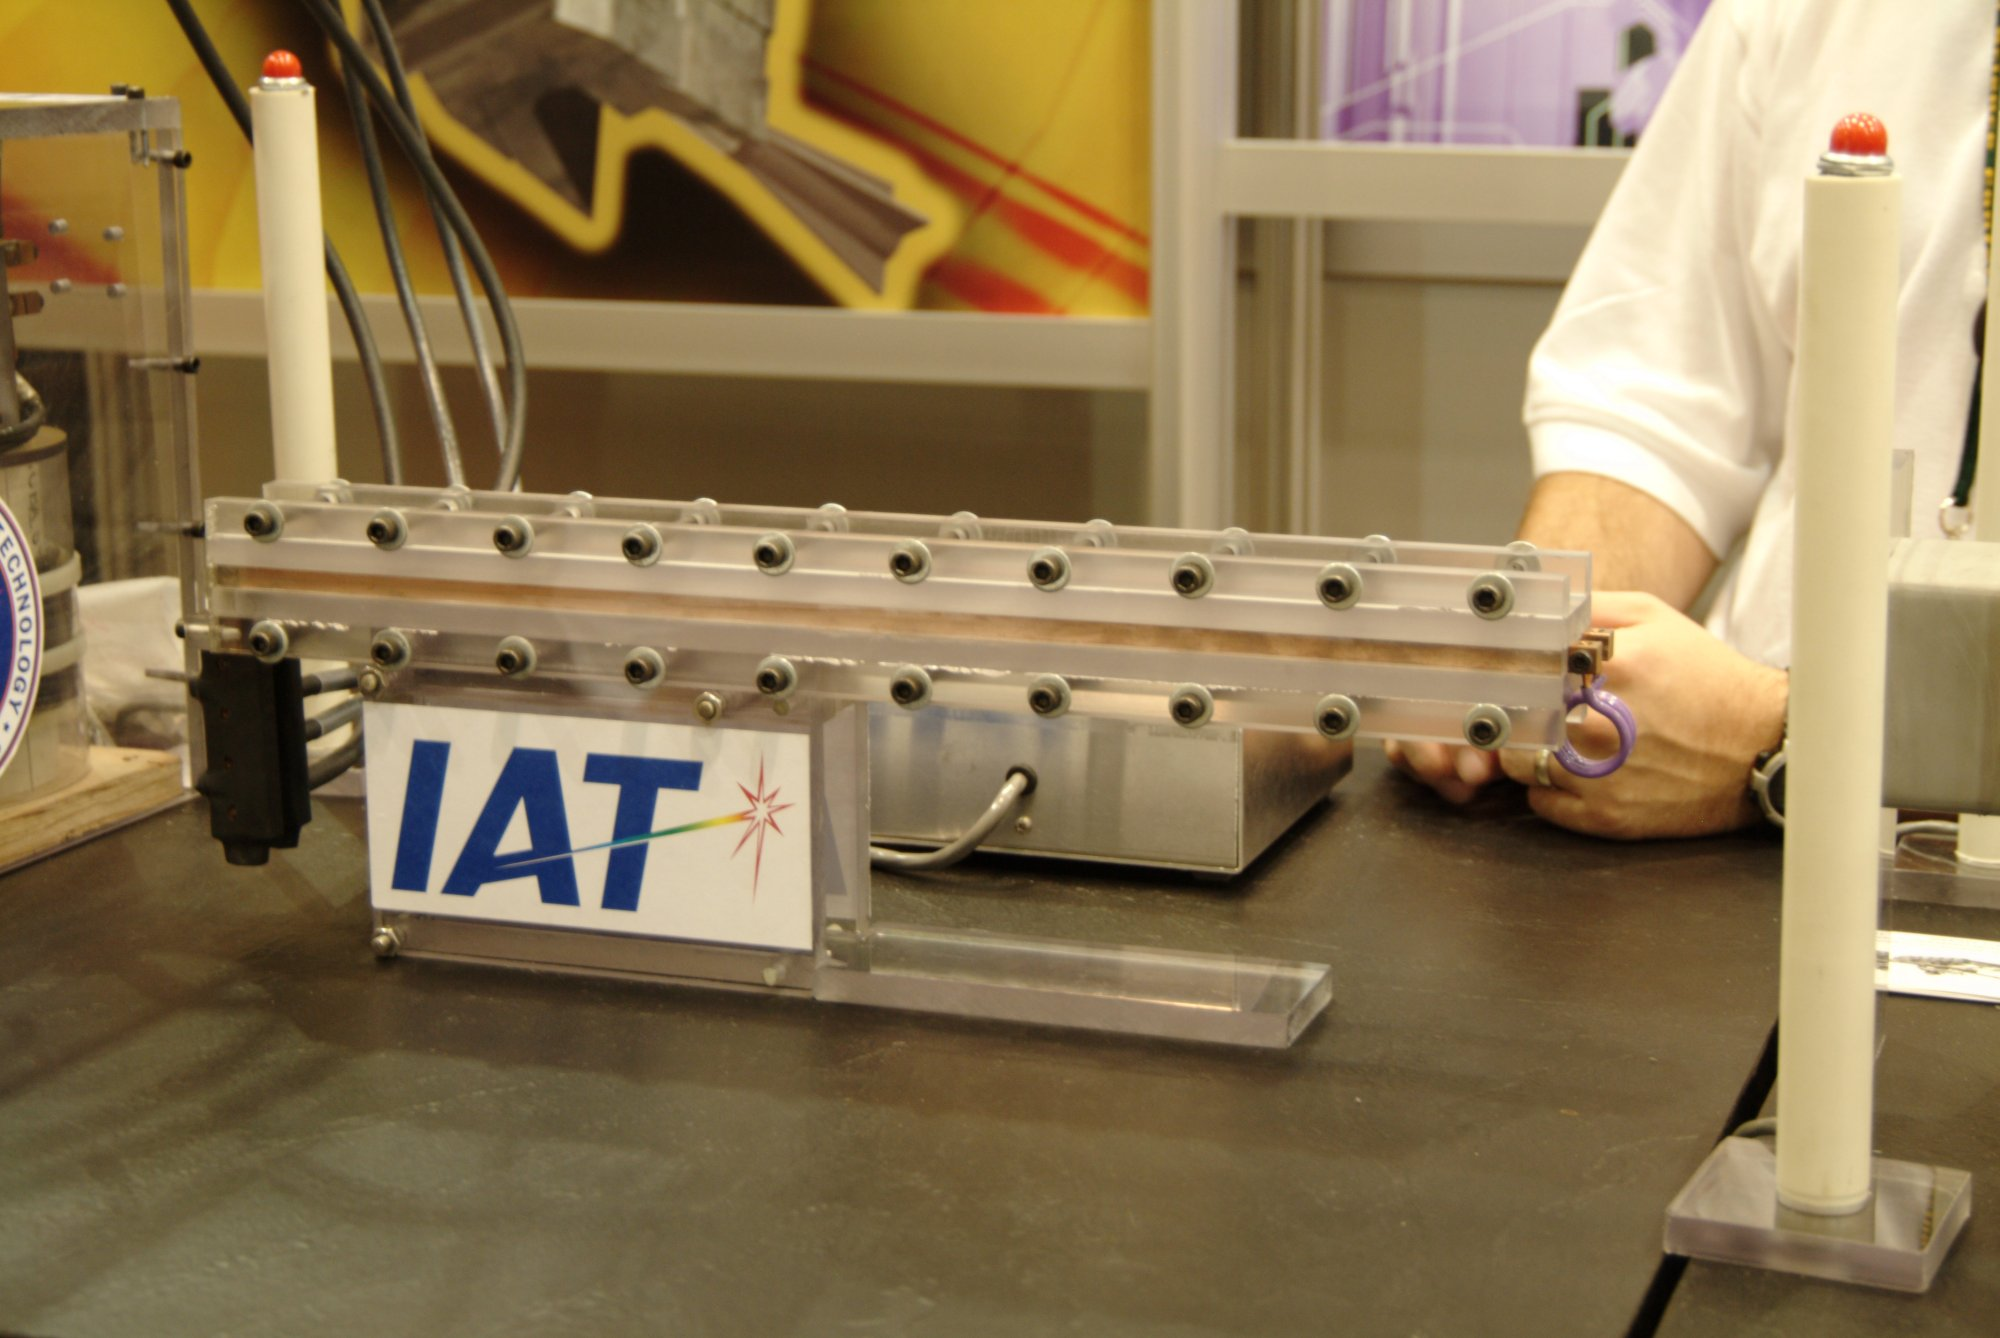 RailgunIAT 1 <!  :en  >IAT Electromagnetic Systems Division Developing Rail Gun Tech for U.S. Military<!  :  >